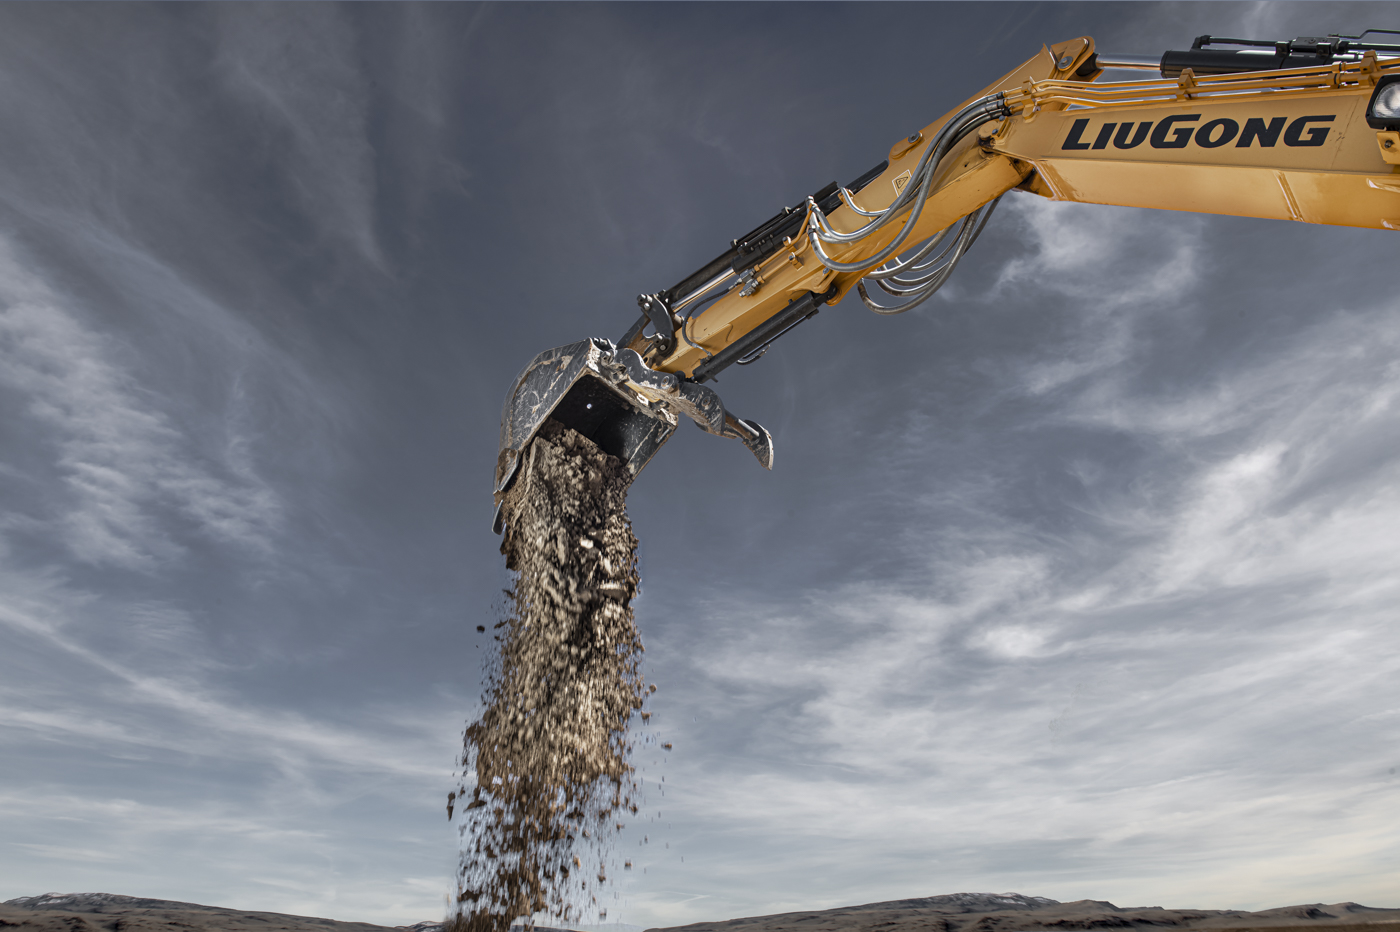 Industrial photography of construction machines